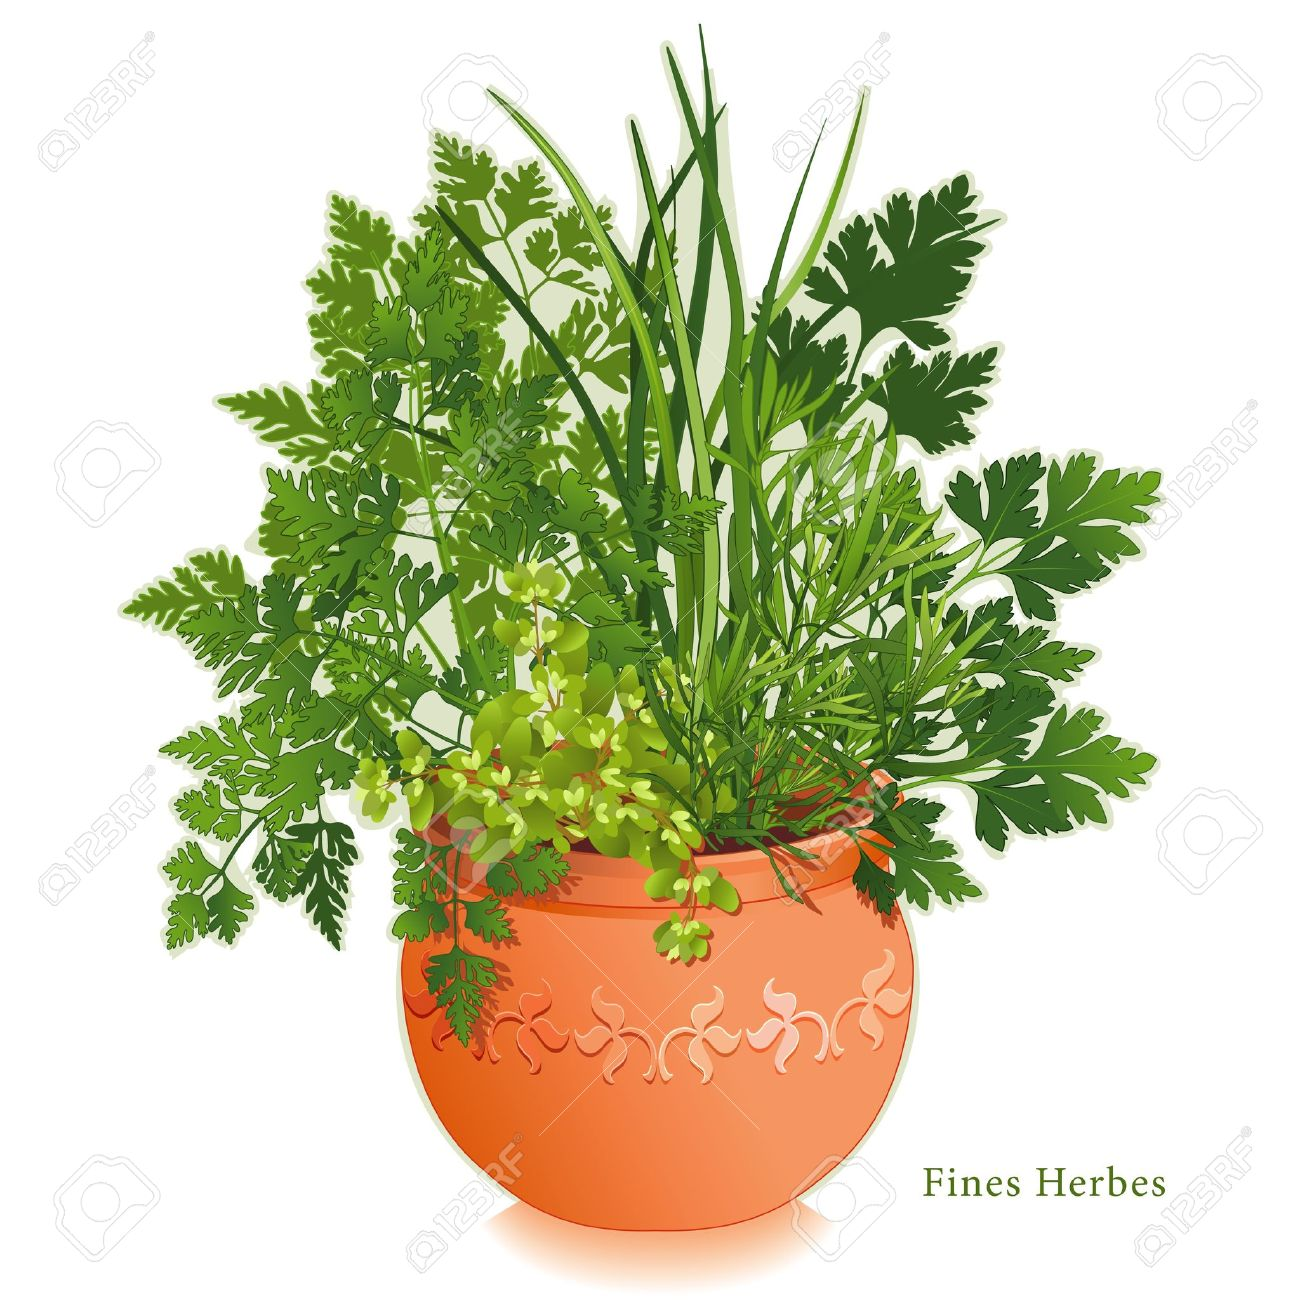 Fine Herbs Garden French Cooking Classic Blend, Fines Herbes.